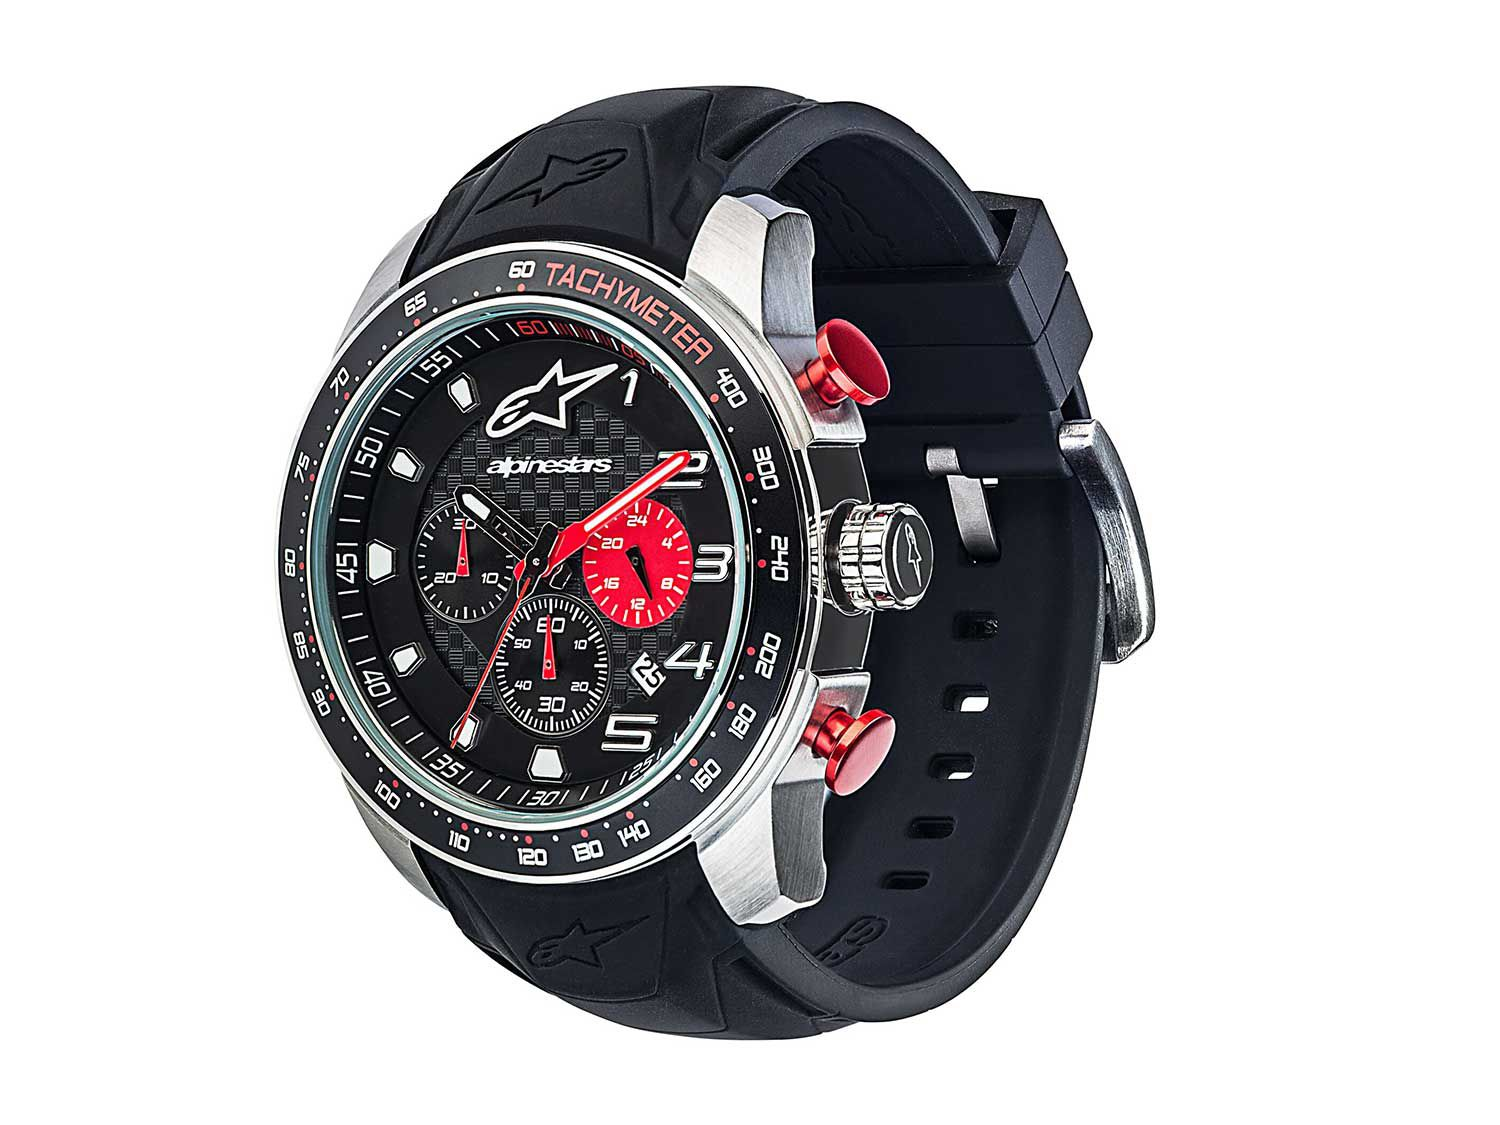 """A new <a  href=""""https://www.alpinestars.com/tech-watch-racing-timer-black-steel"""">Tech Watch</a> is equipped with a racing timer and features an integrated silicone strap, 45mm stainless steel case that's water resistant up to 328 feet."""